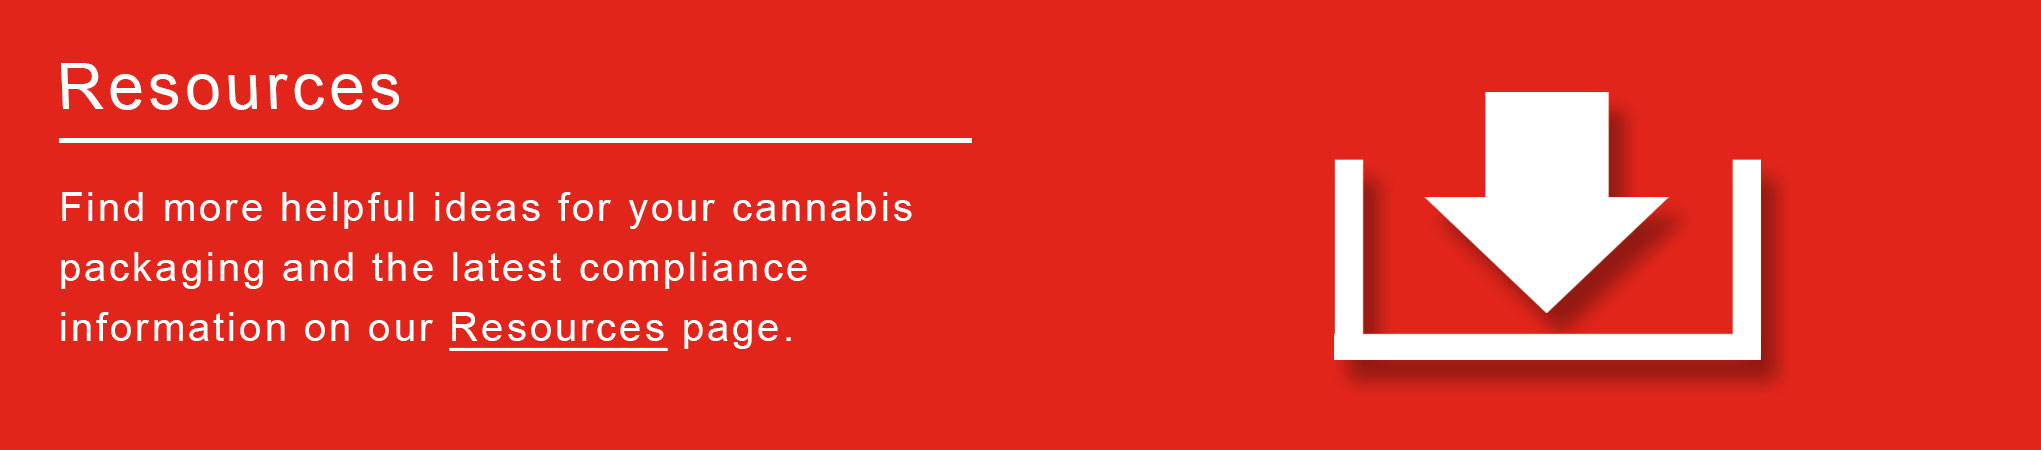 Find more helpful ideas for your cannabis packaging and the latest compliance information on our Resources page